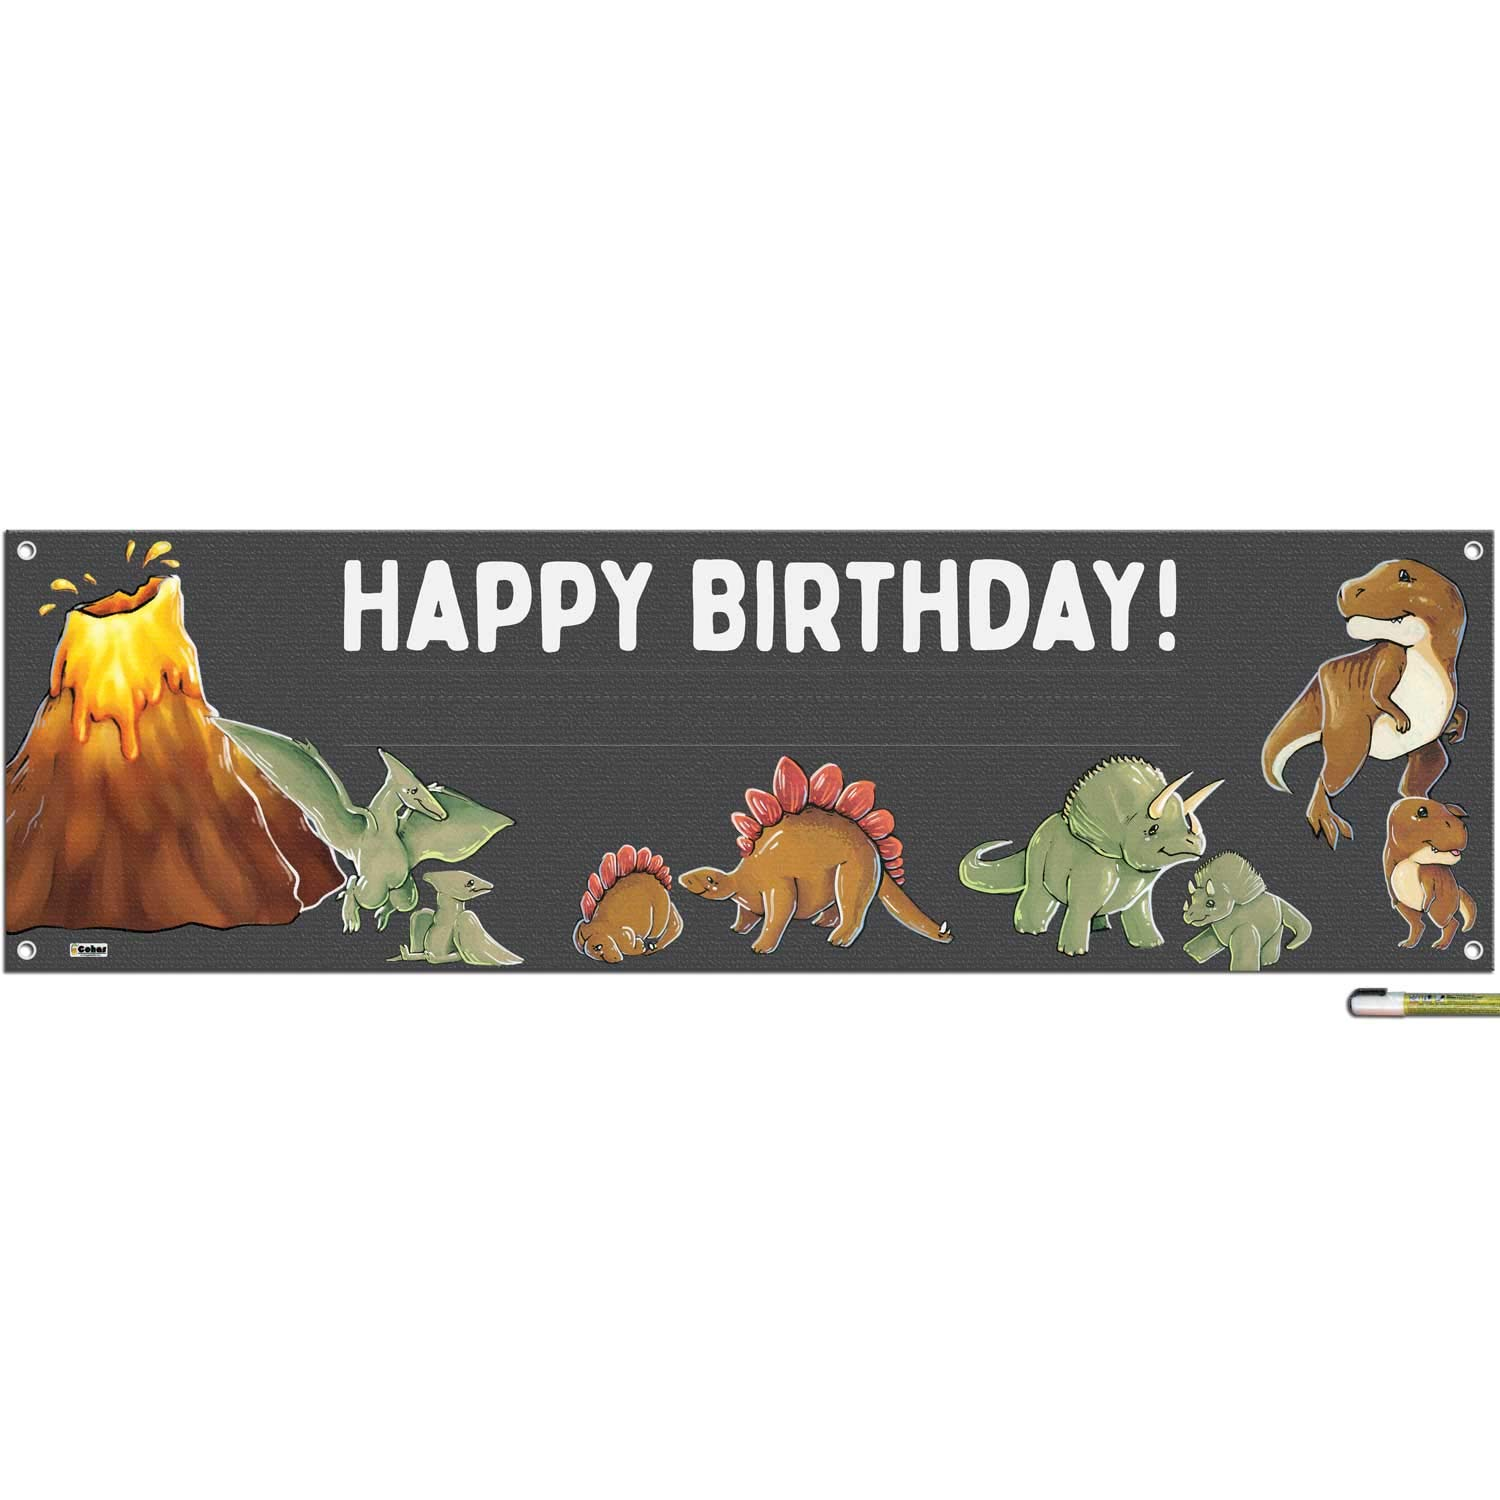 Cohas Dinosaur Theme Happy Birthday Banner Includes 16 by 52 Inch Vinyl Banner with Metal Hanging Rings, Additional Text Guidelines, and White Marker